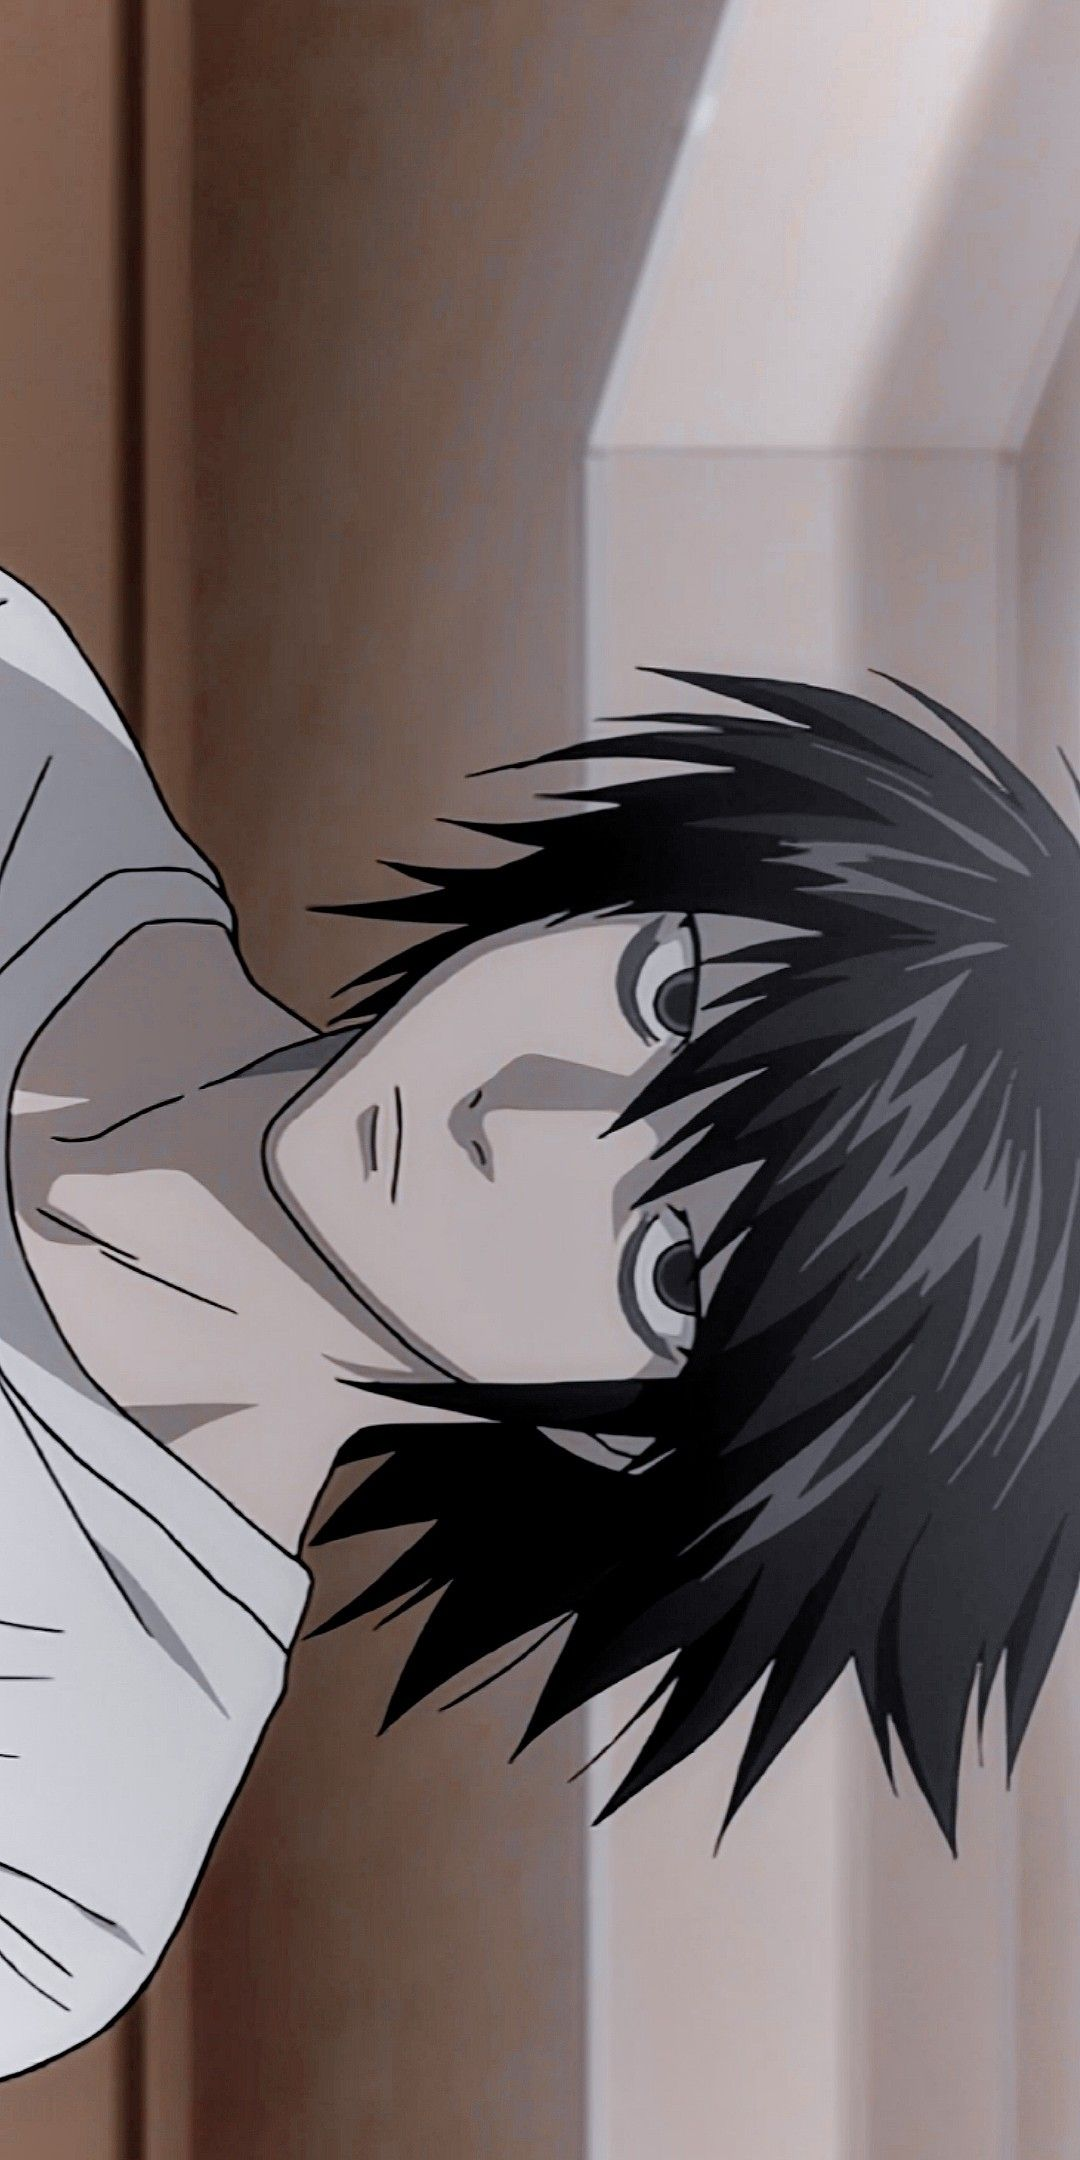 Pin On Anime Wallpapers Death note anime hd wallpaper